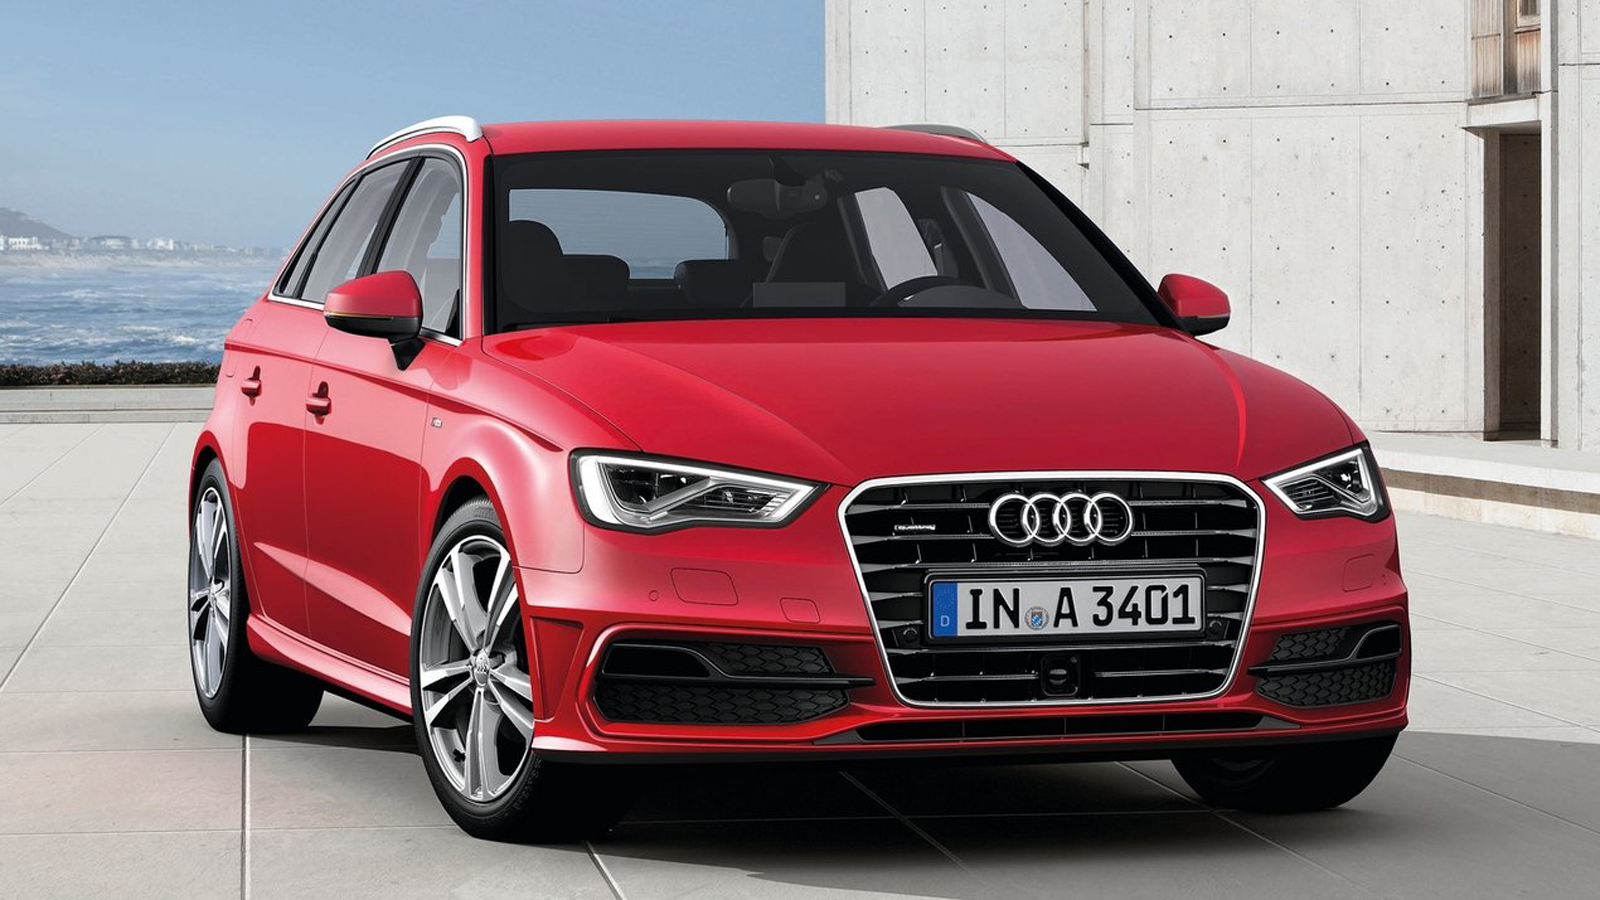 2014 audi a3 sportback s line car photos catalog 2018. Black Bedroom Furniture Sets. Home Design Ideas